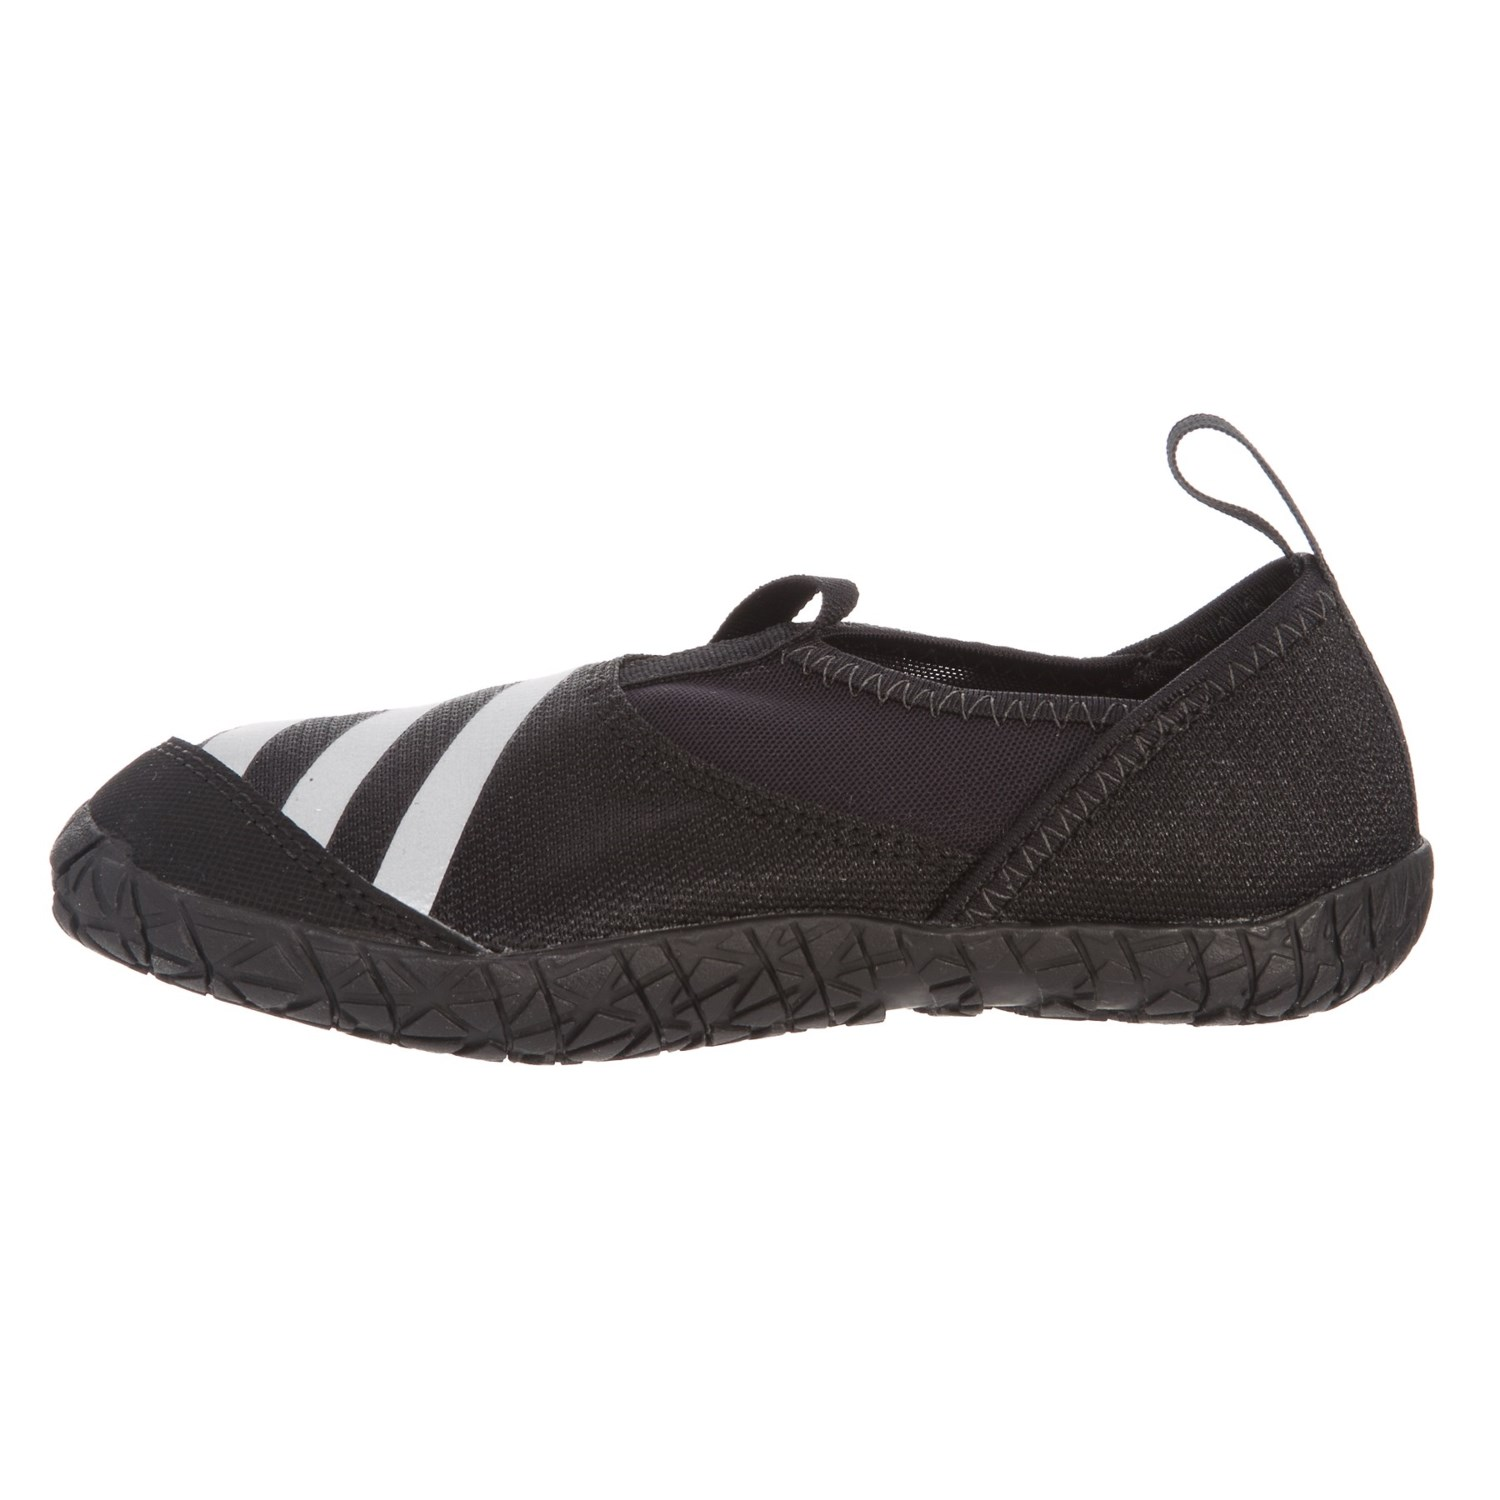 23047988e adidas Jawpaw Water Shoes (For Little and Big Kids) - Save 50%